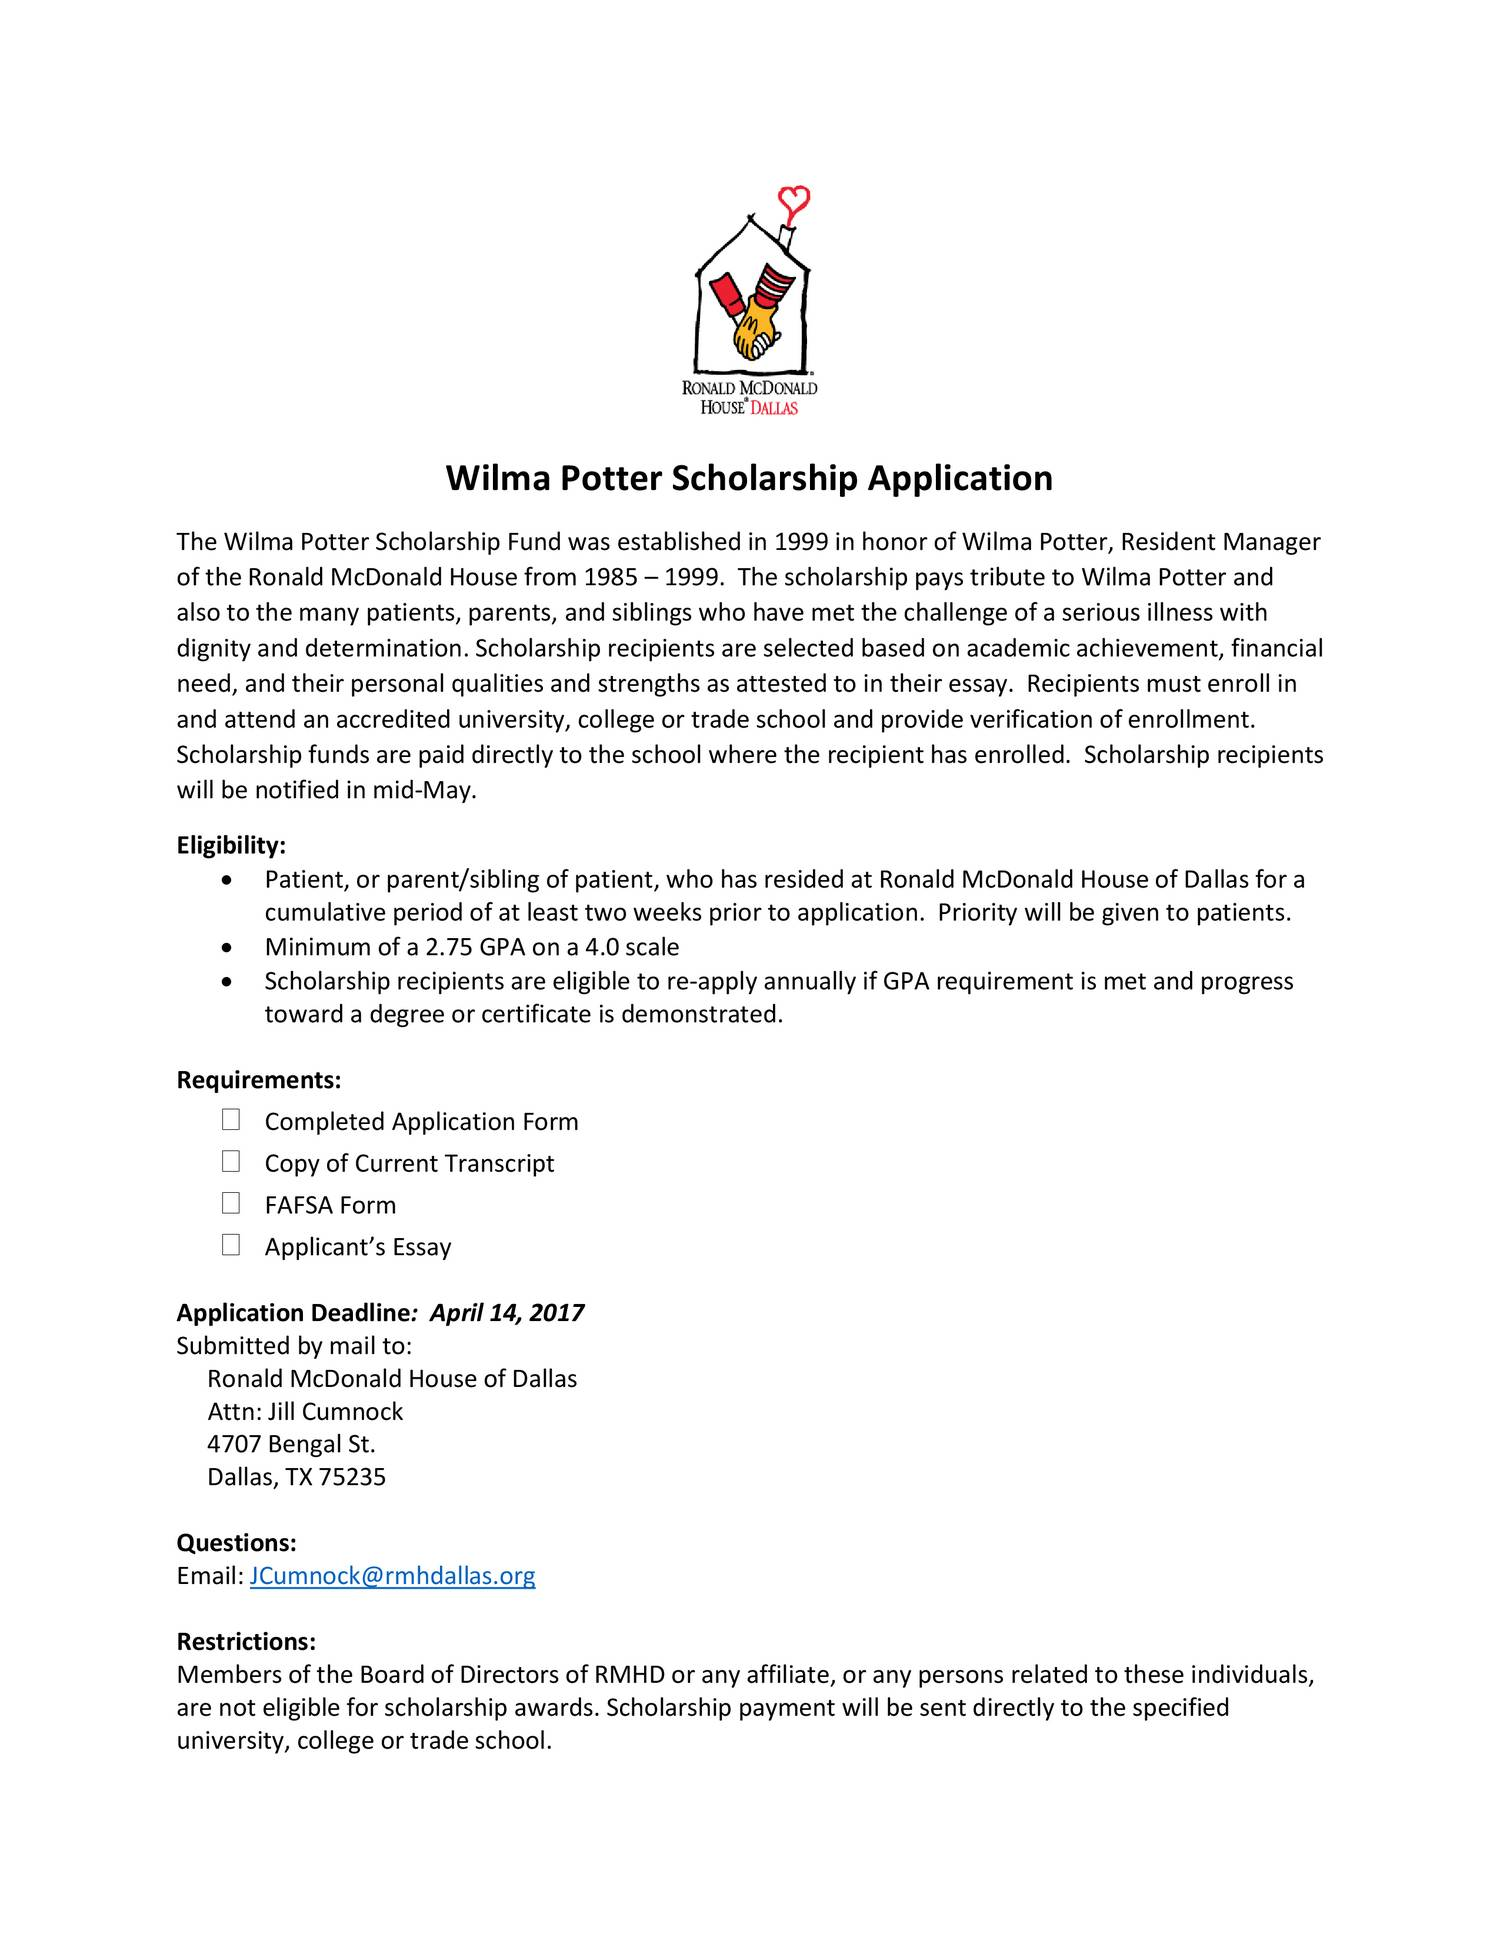 Scholarship essay cover page